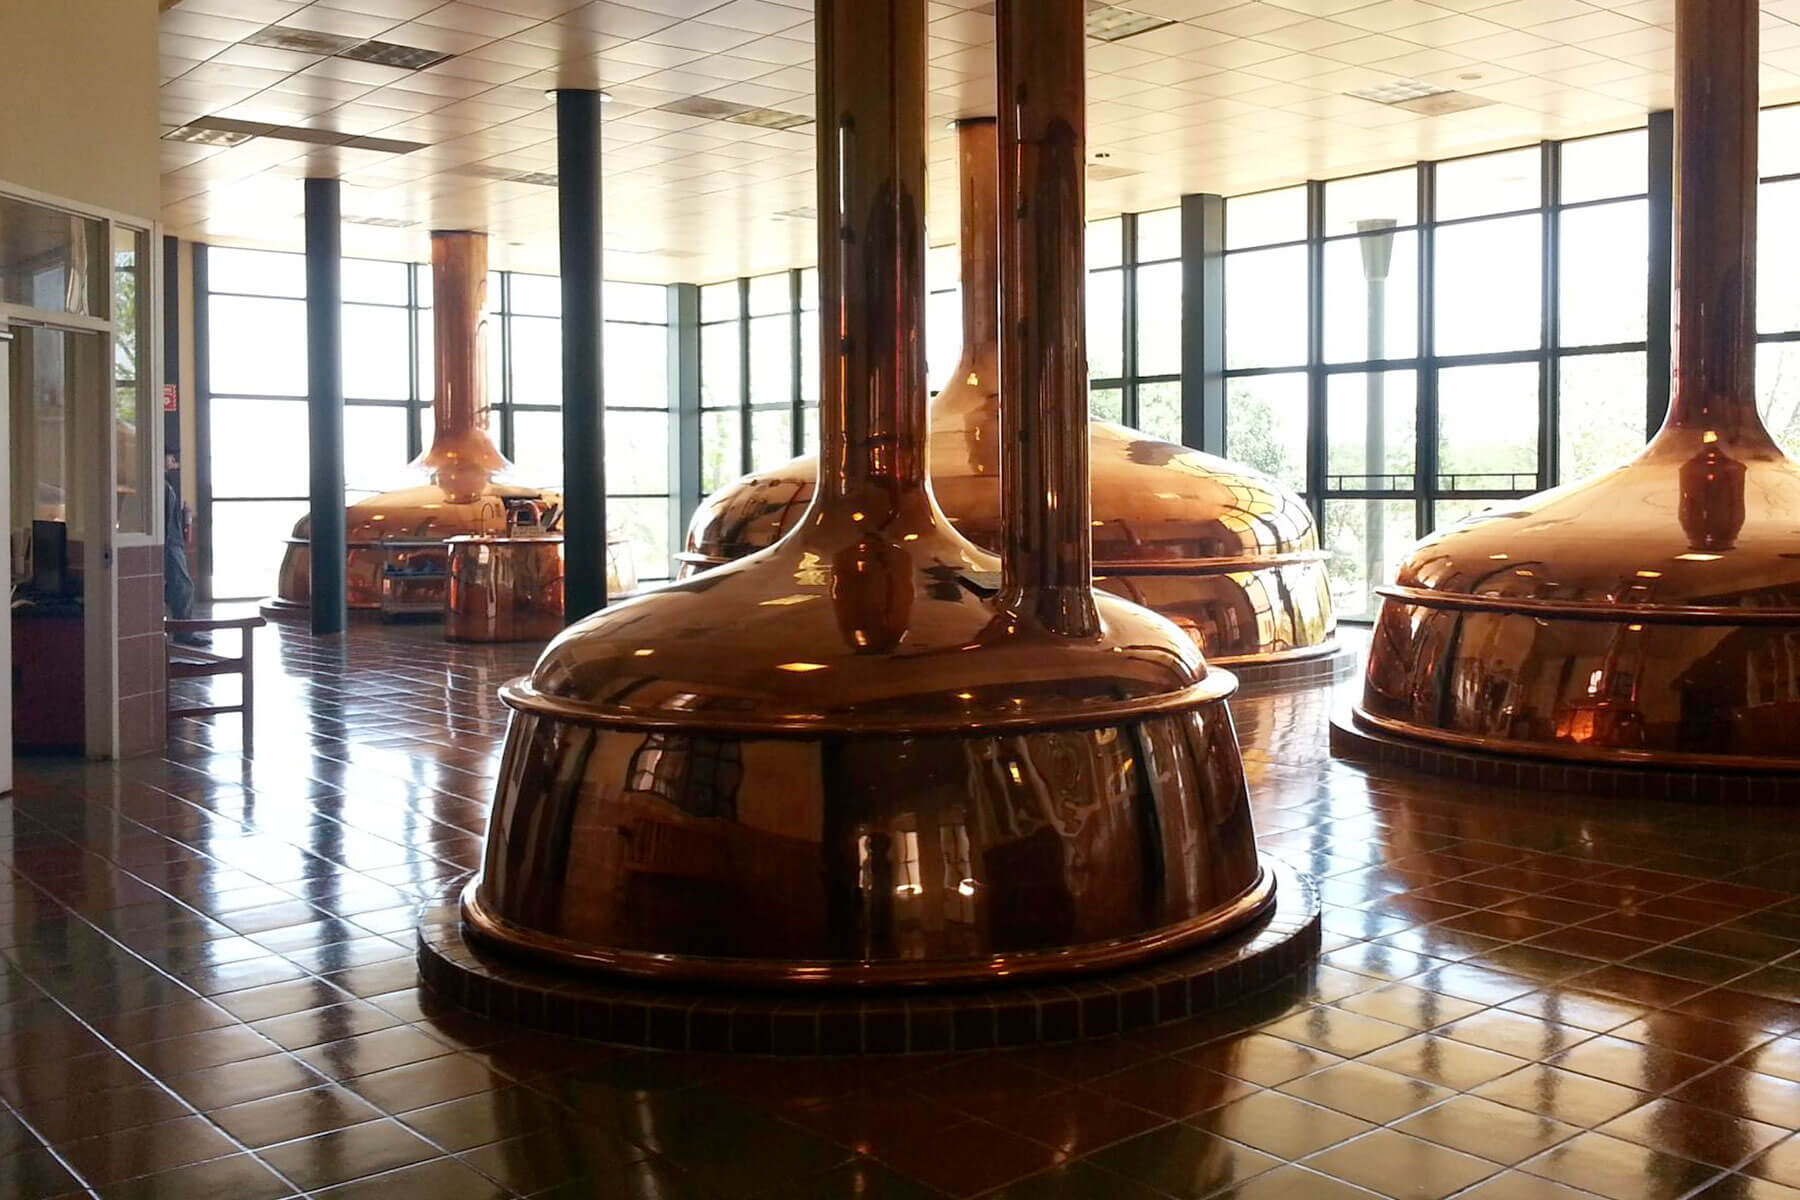 Kettles as part of the tour at the Spoetzl Brewery in Shiner, Texas